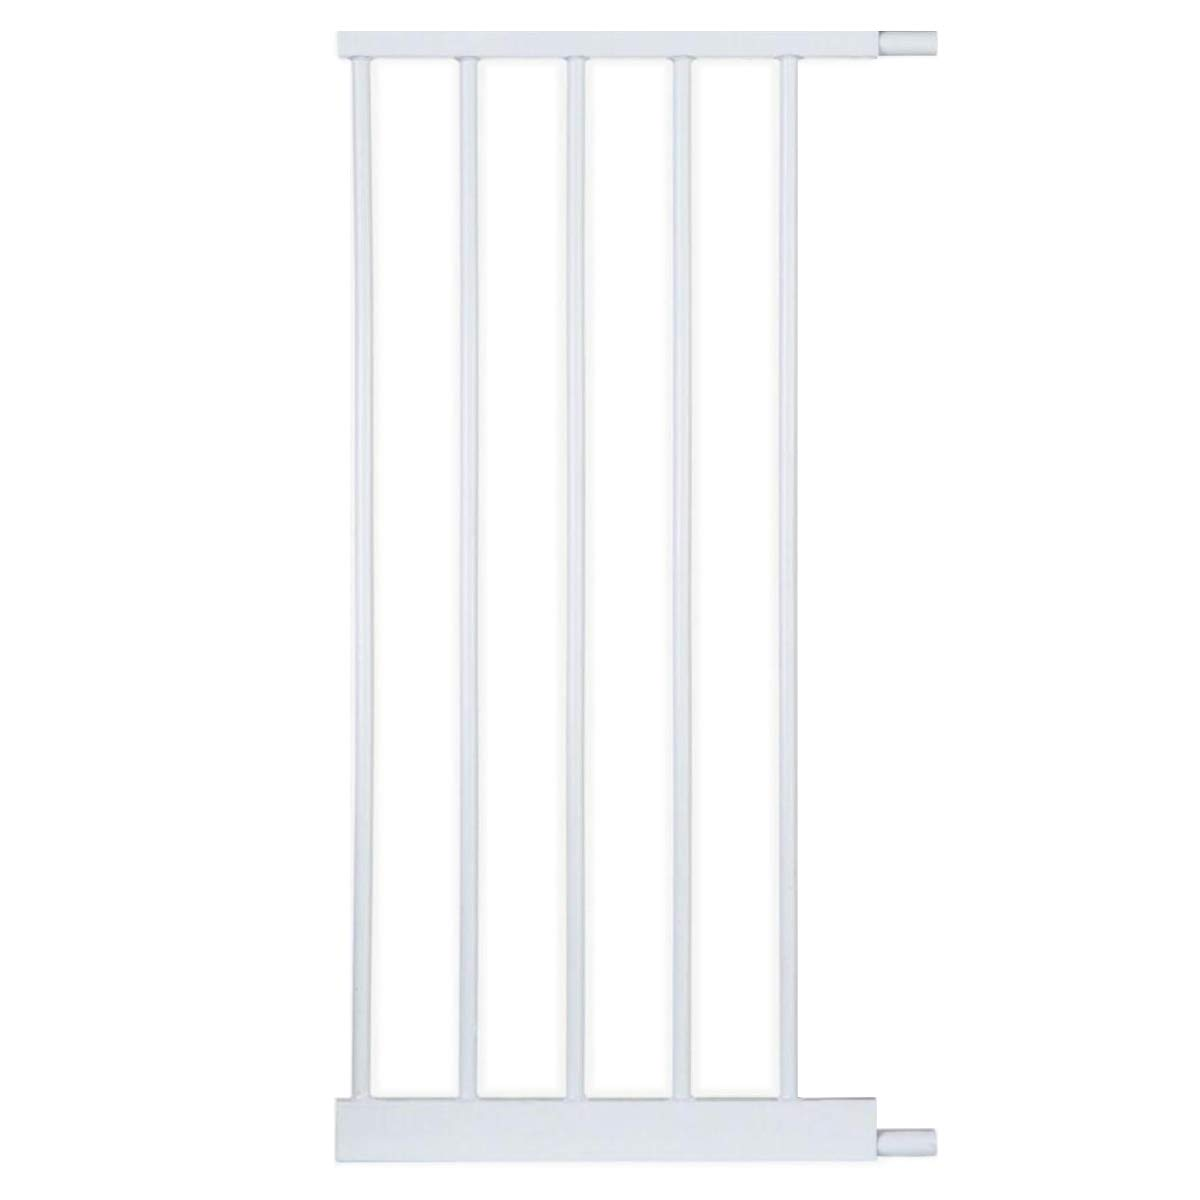 North States 5-Bar Extension for Auto-Close Baby Gate: Add extension for a gate up to 52.75